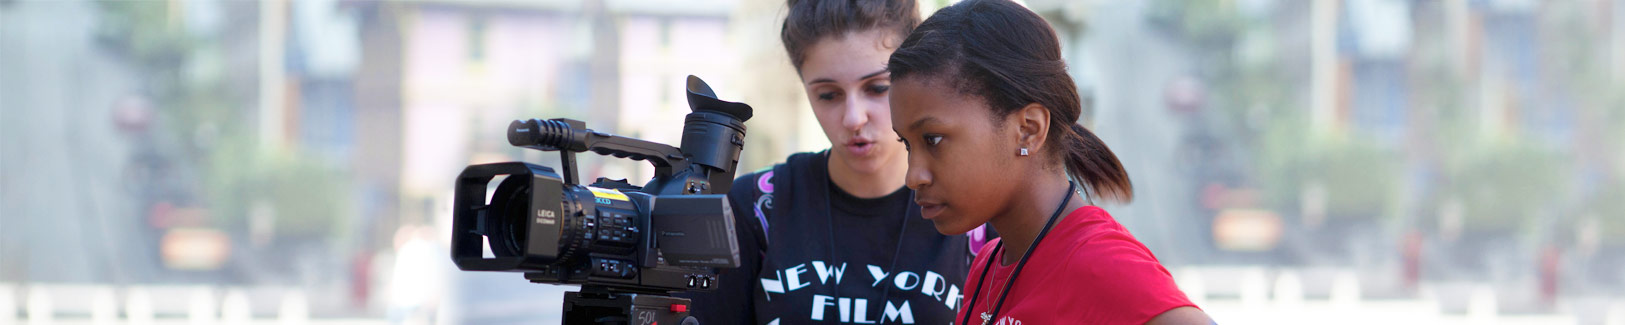 Weekend Digital Film Camp for Teens